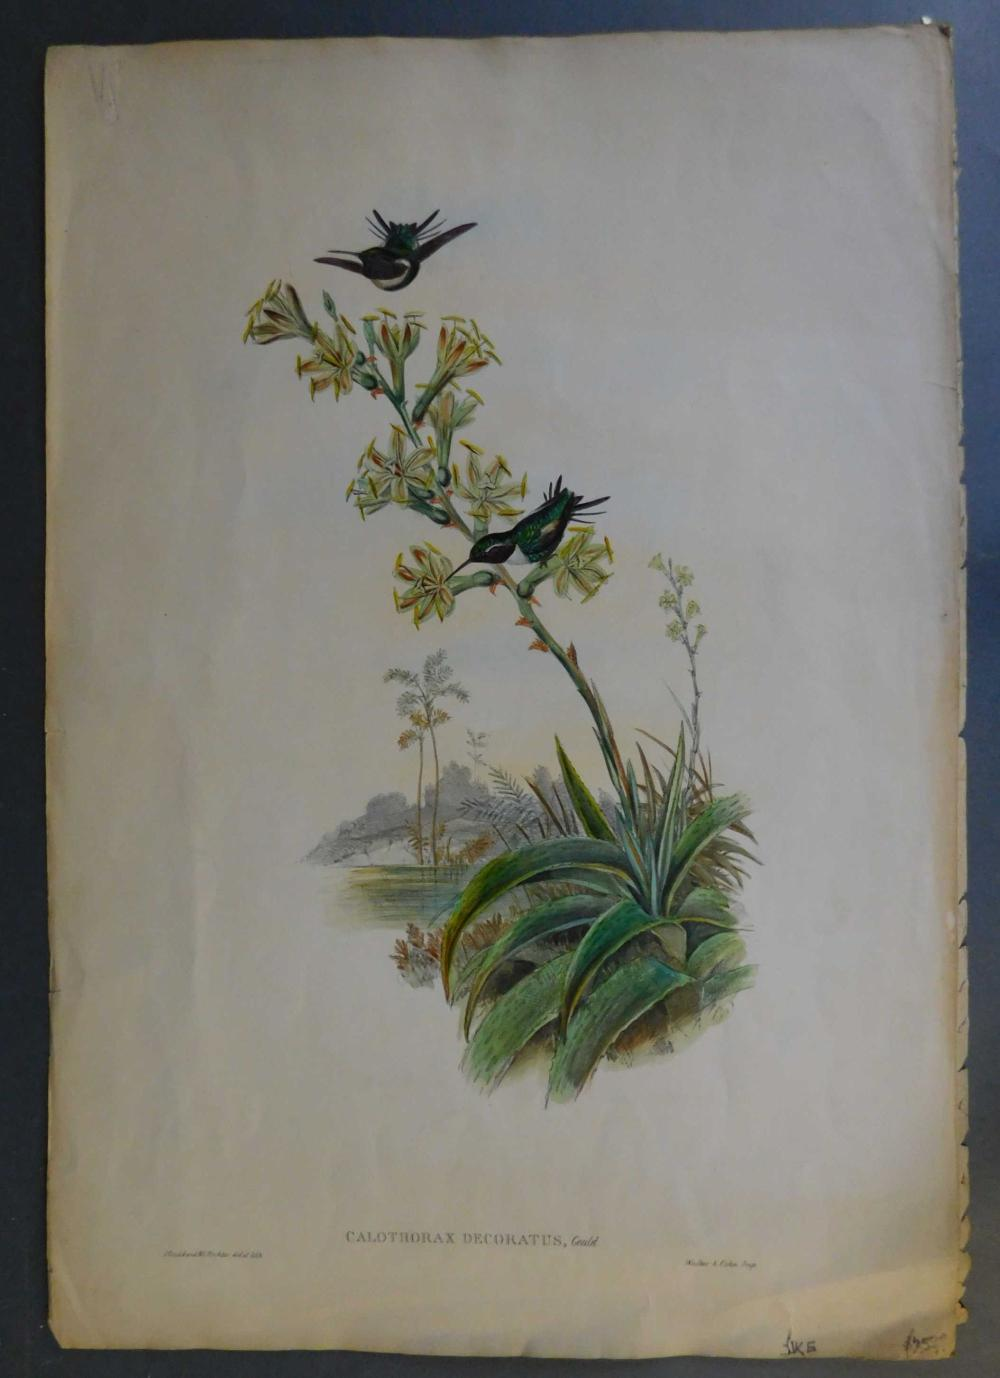 2 hand colored lithographs of birds, mid-1800s.